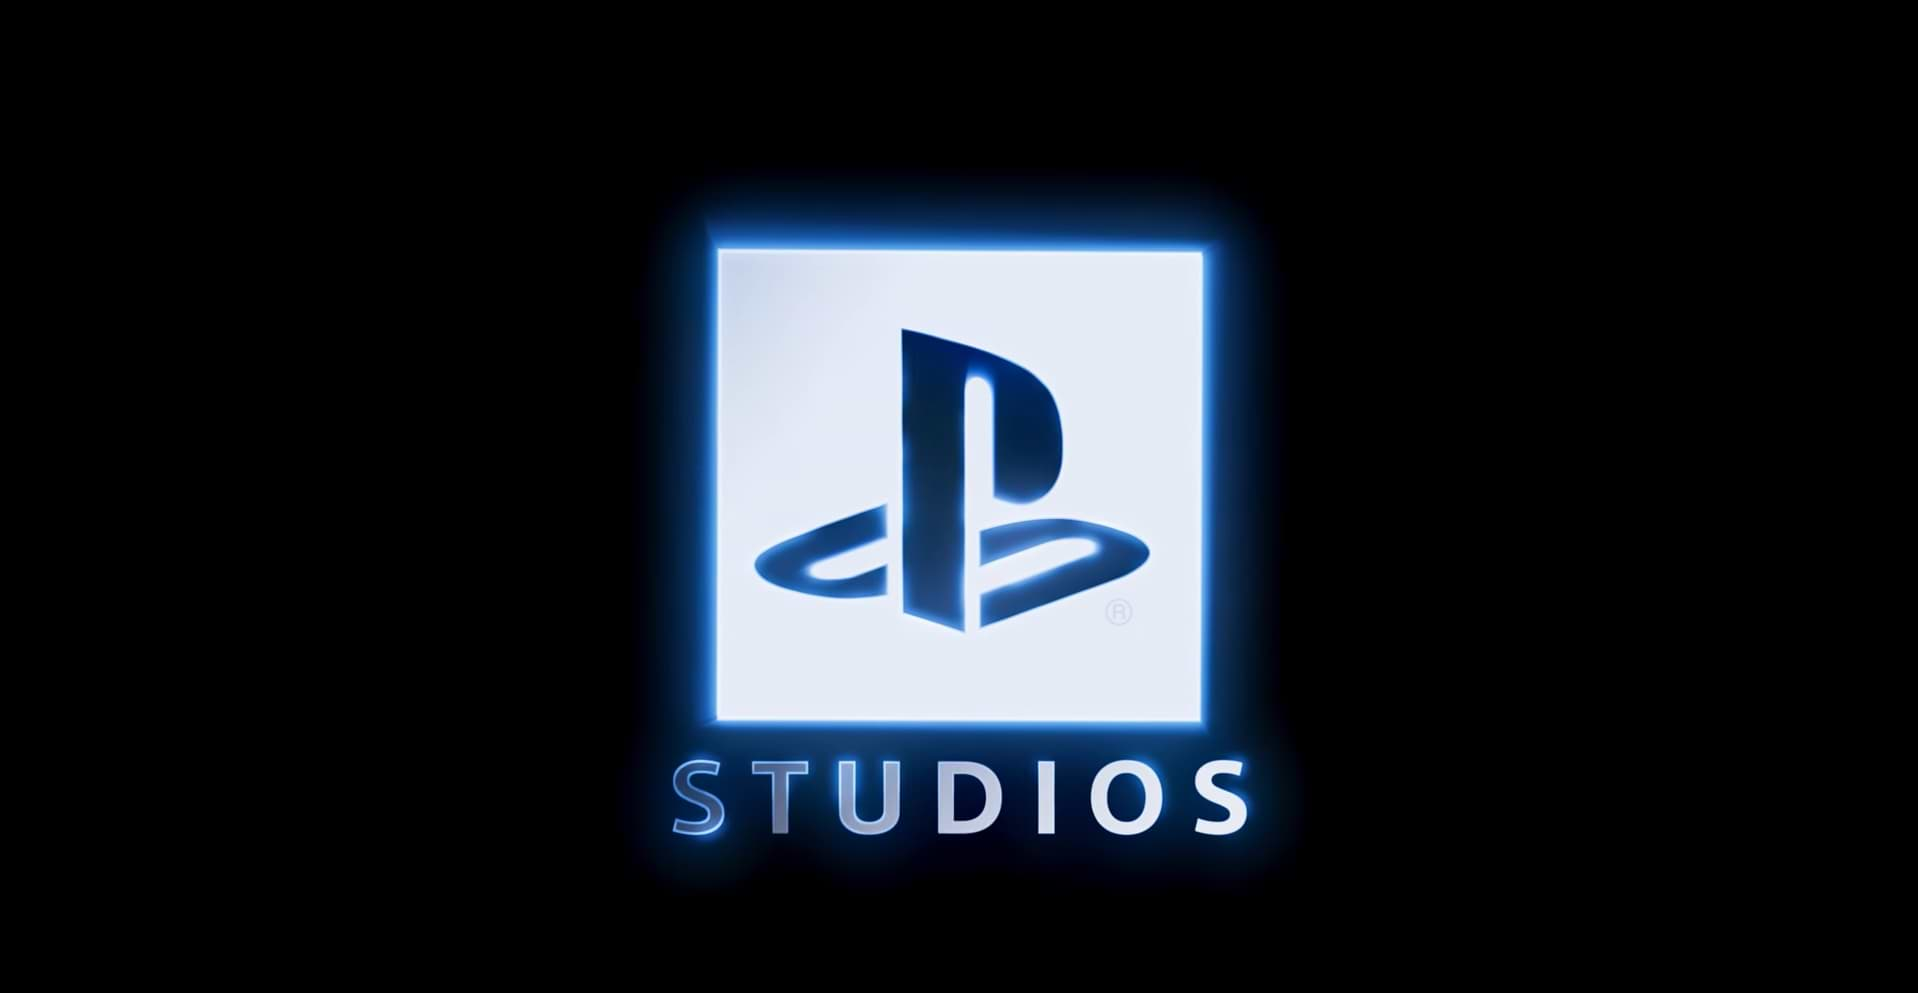 Sony Announces Its New Brand Playstation Studios To Identify Its Own Games